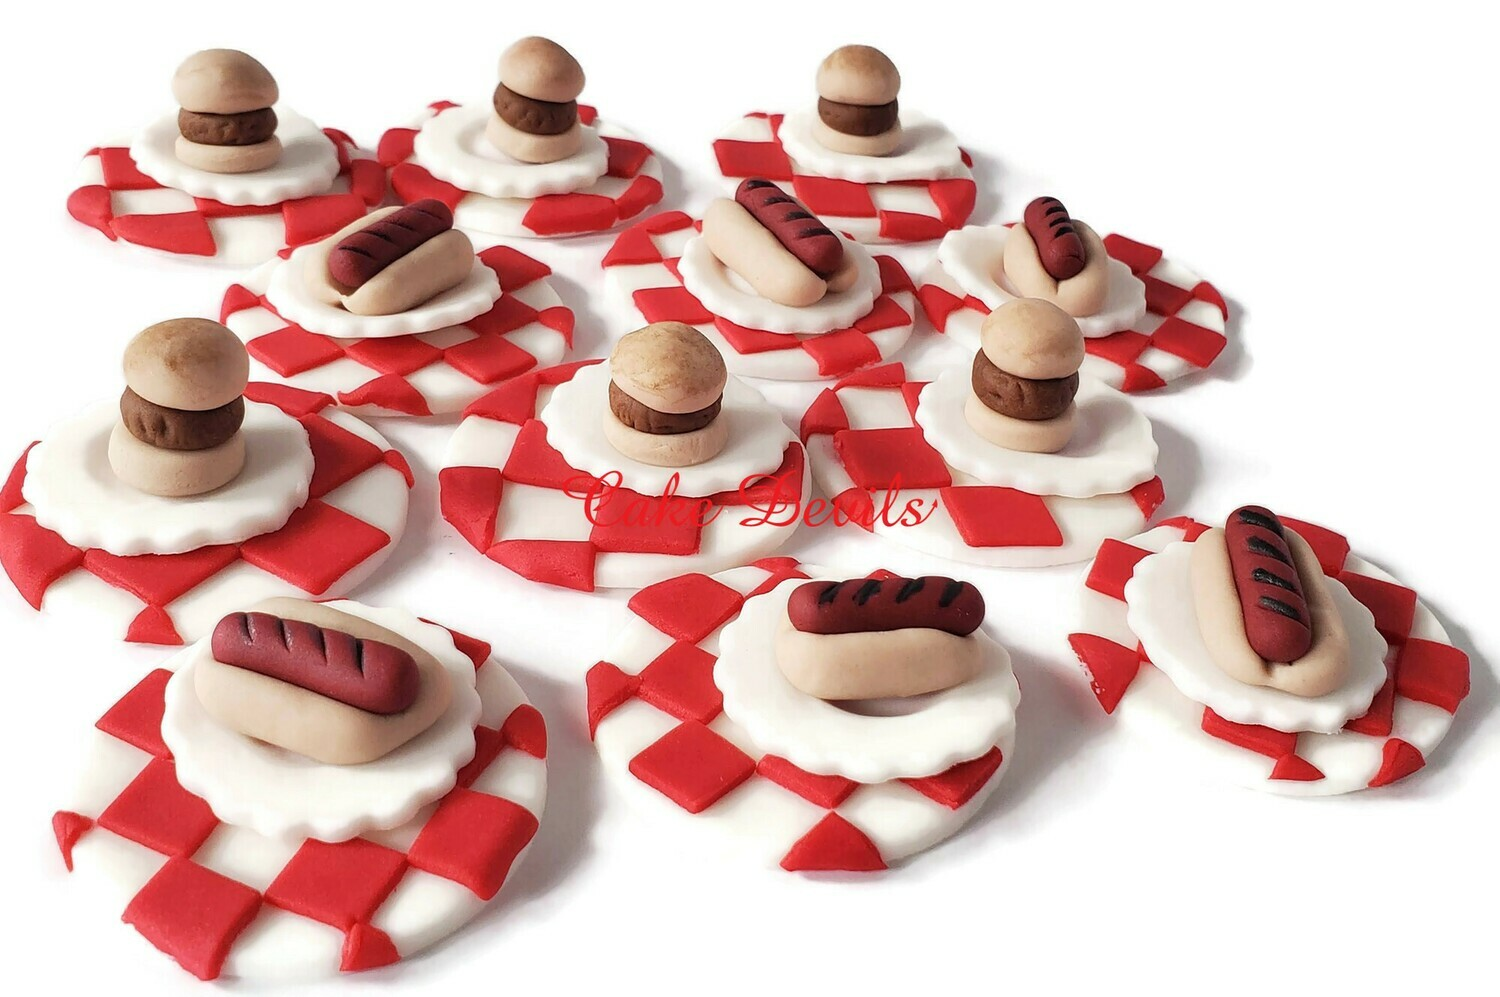 Hot Dog and Hamburger Fondant Cupcake Toppers, great for a birthday party or picnic!